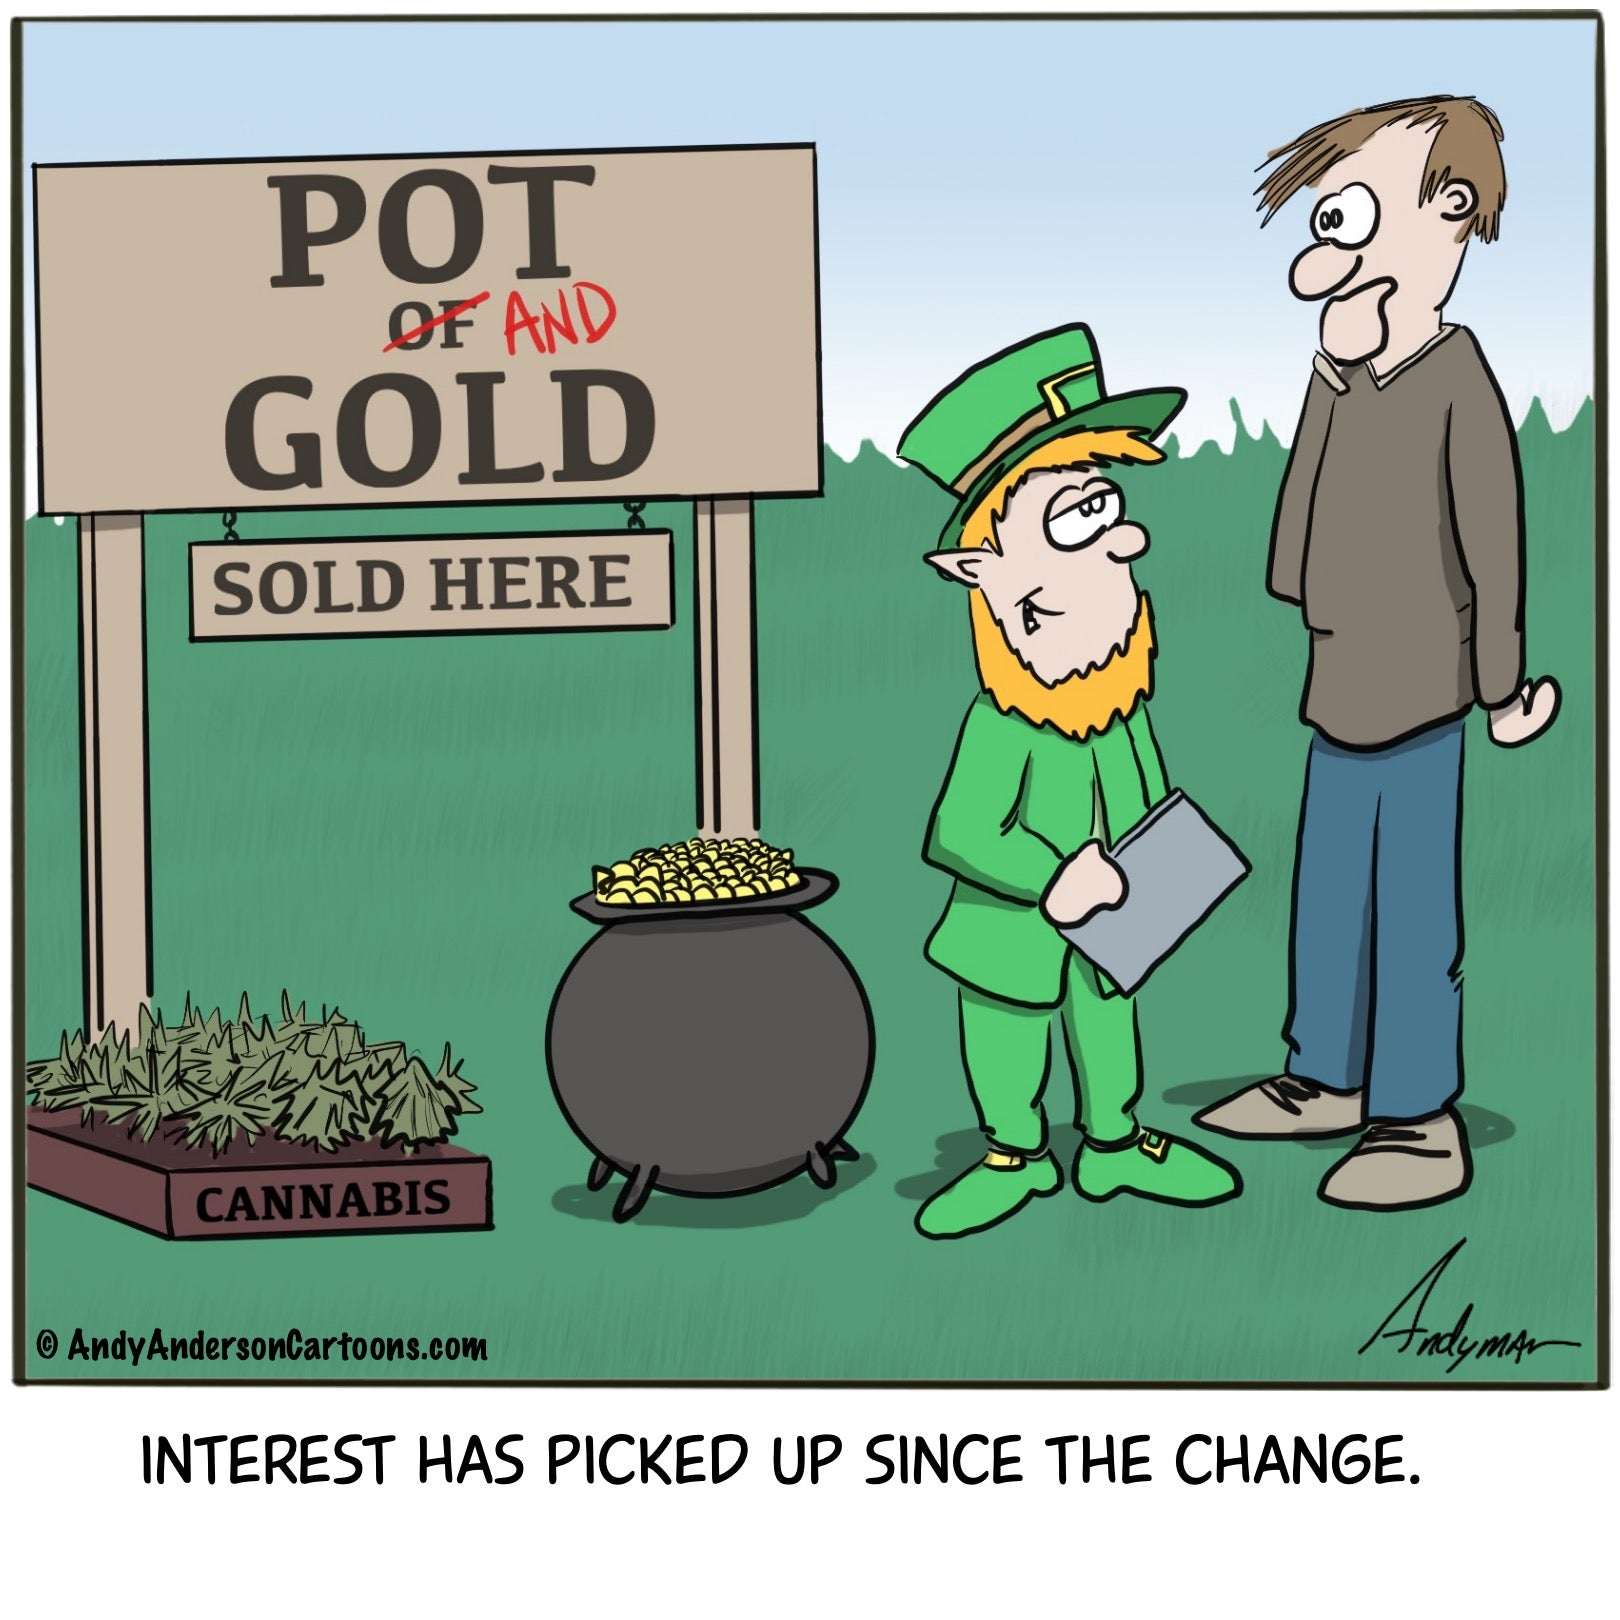 St. Patrick's Day Pot and Gold cartoon by Andy Anderson